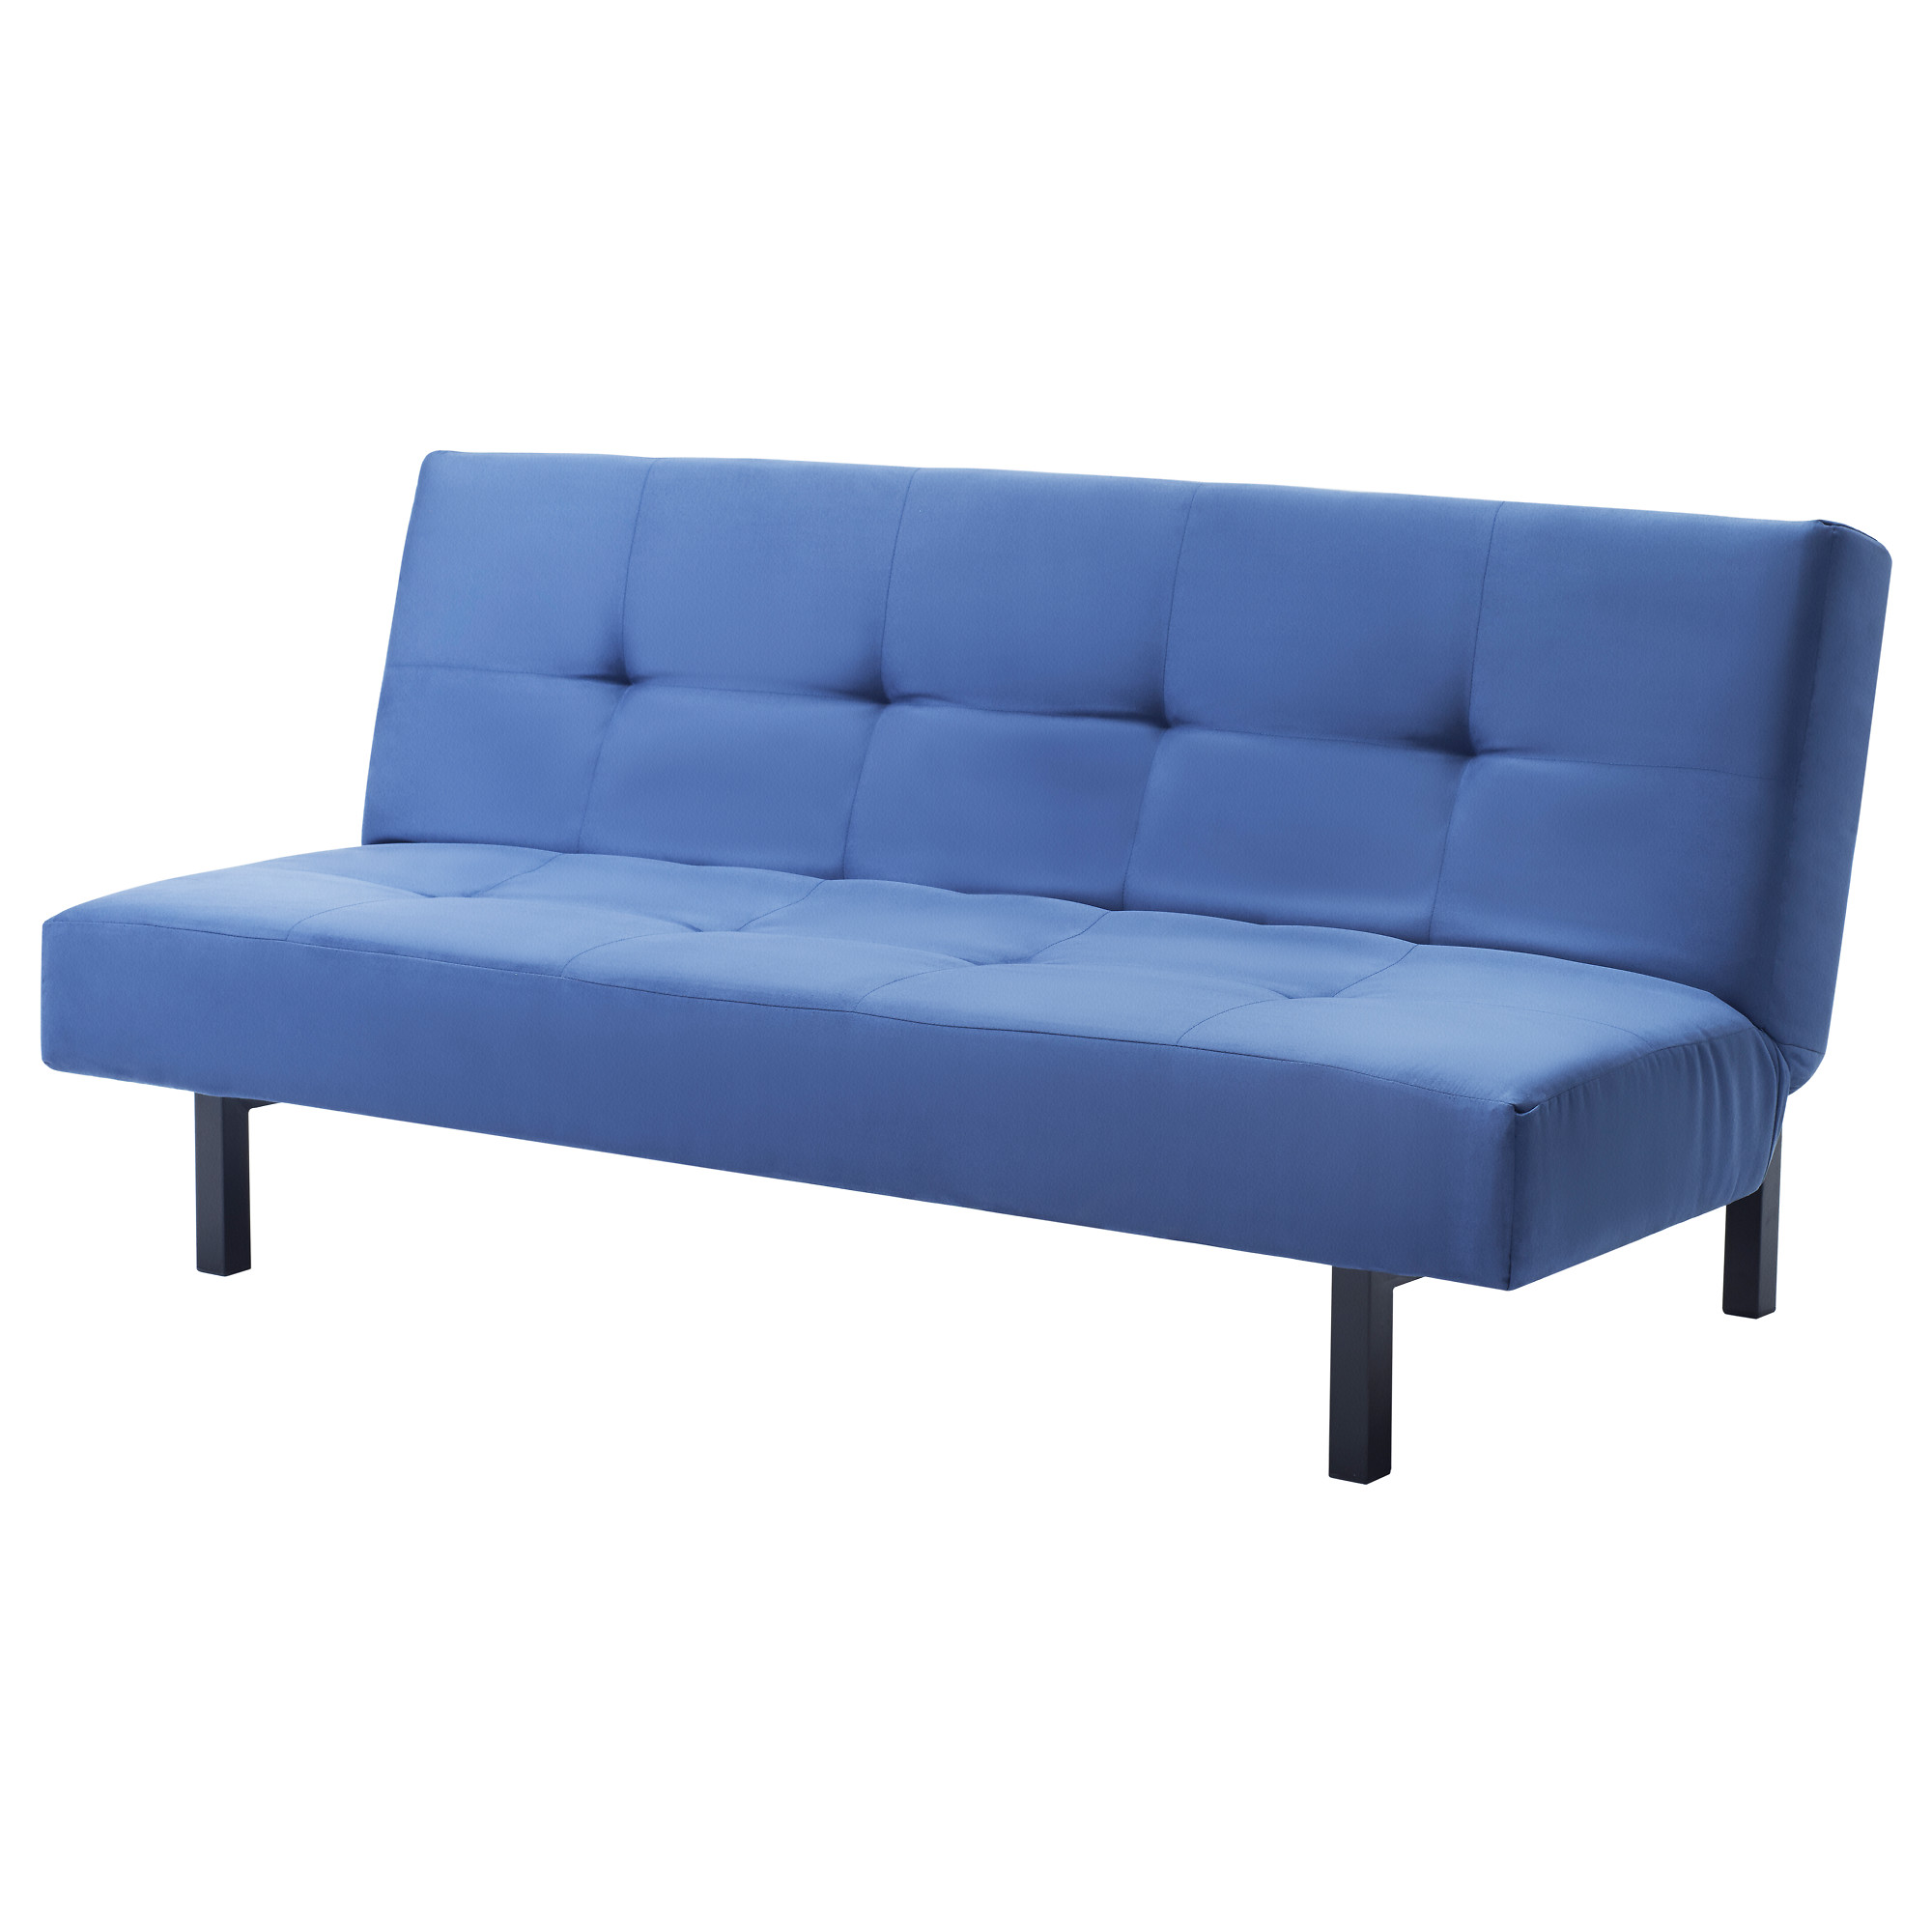 Engaging Furniture in the Living room cheap futons for sale